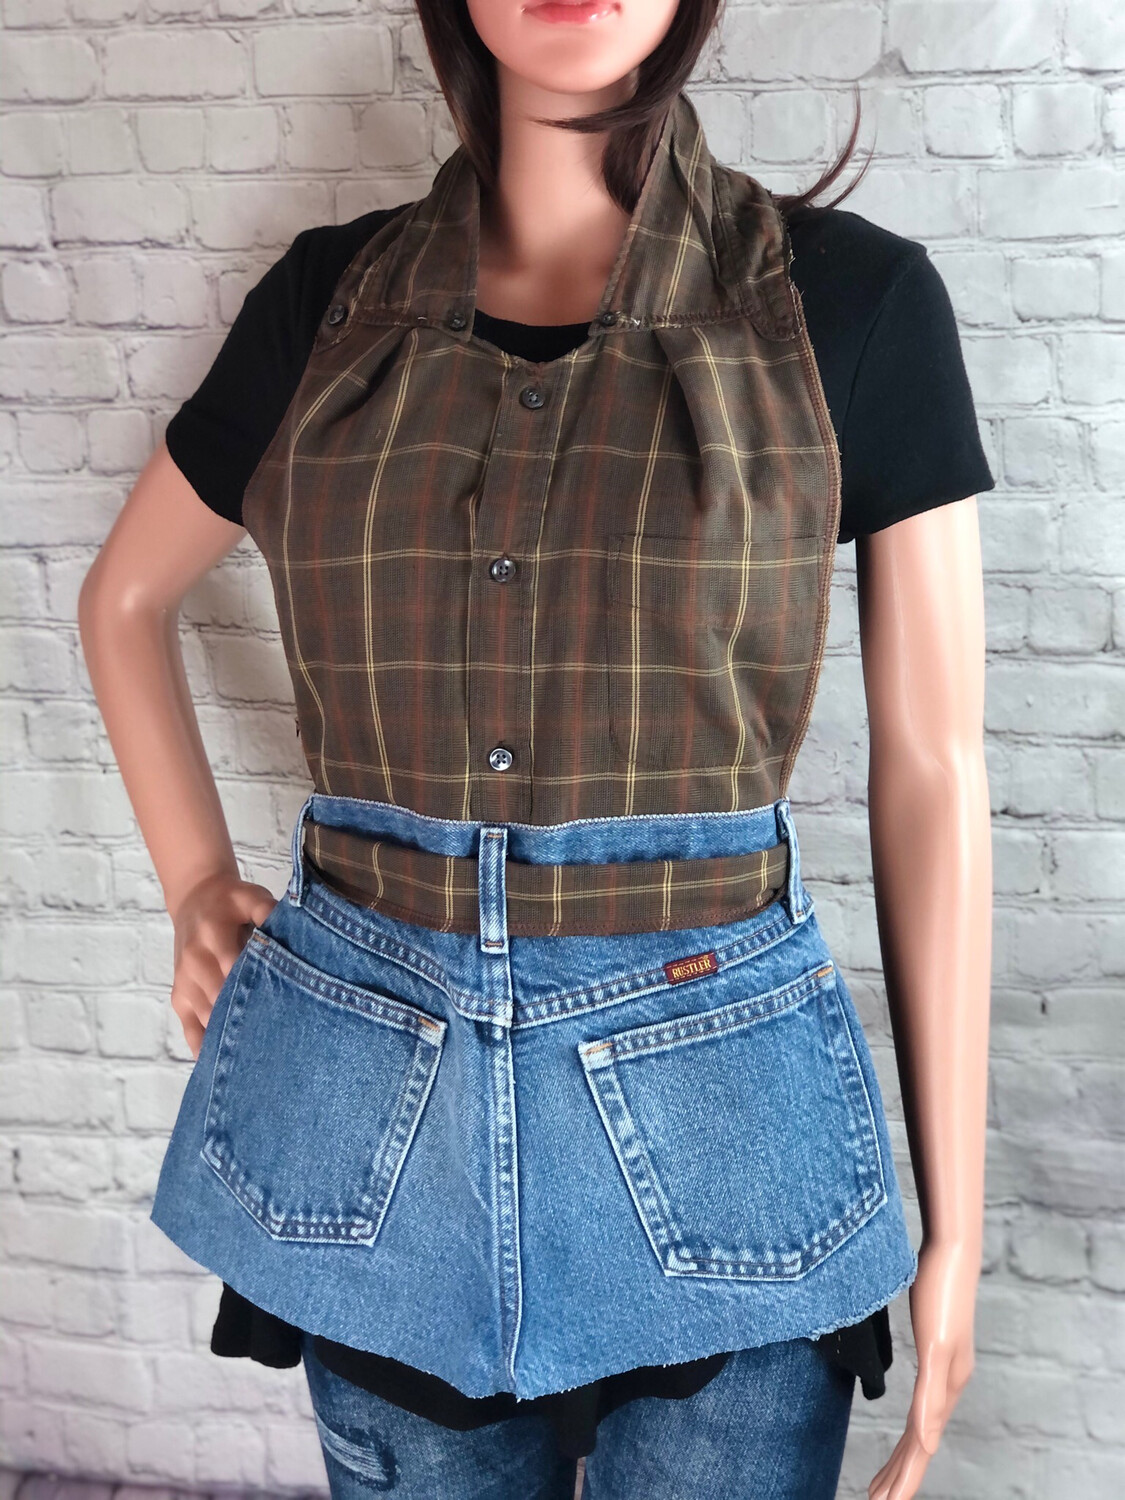 S Threads Upcycled Apron Crafters Bakers Apron Repurposed Button Up Dress Shirt